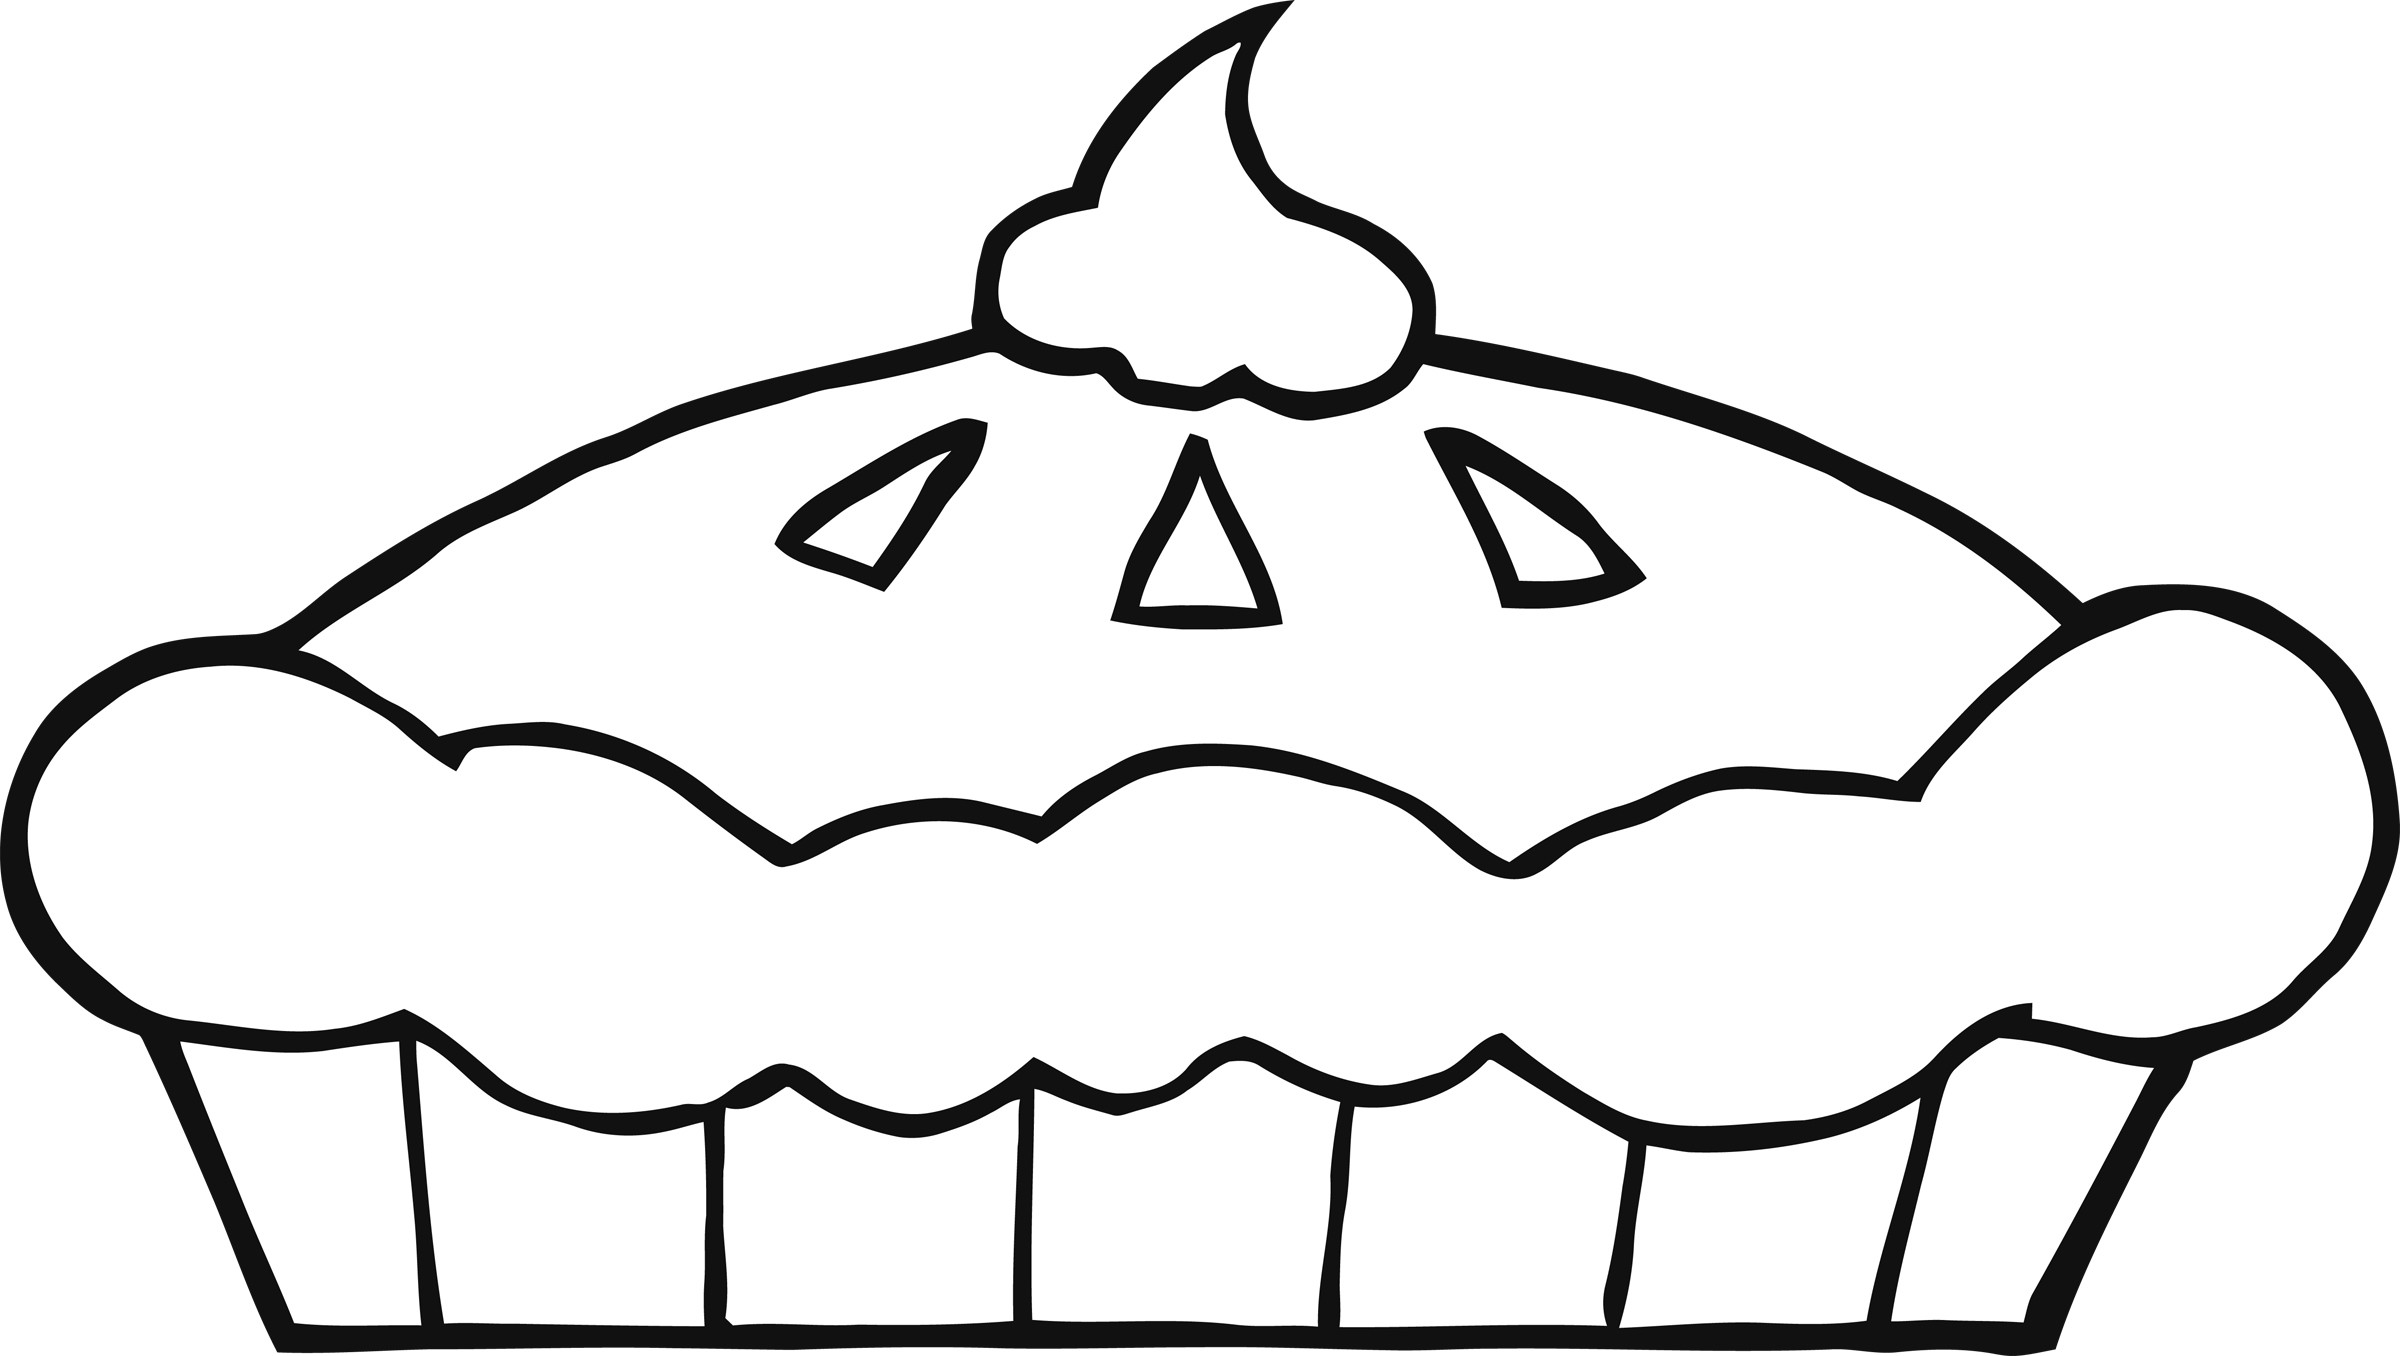 2400x1356 Pies Clipart Black And White